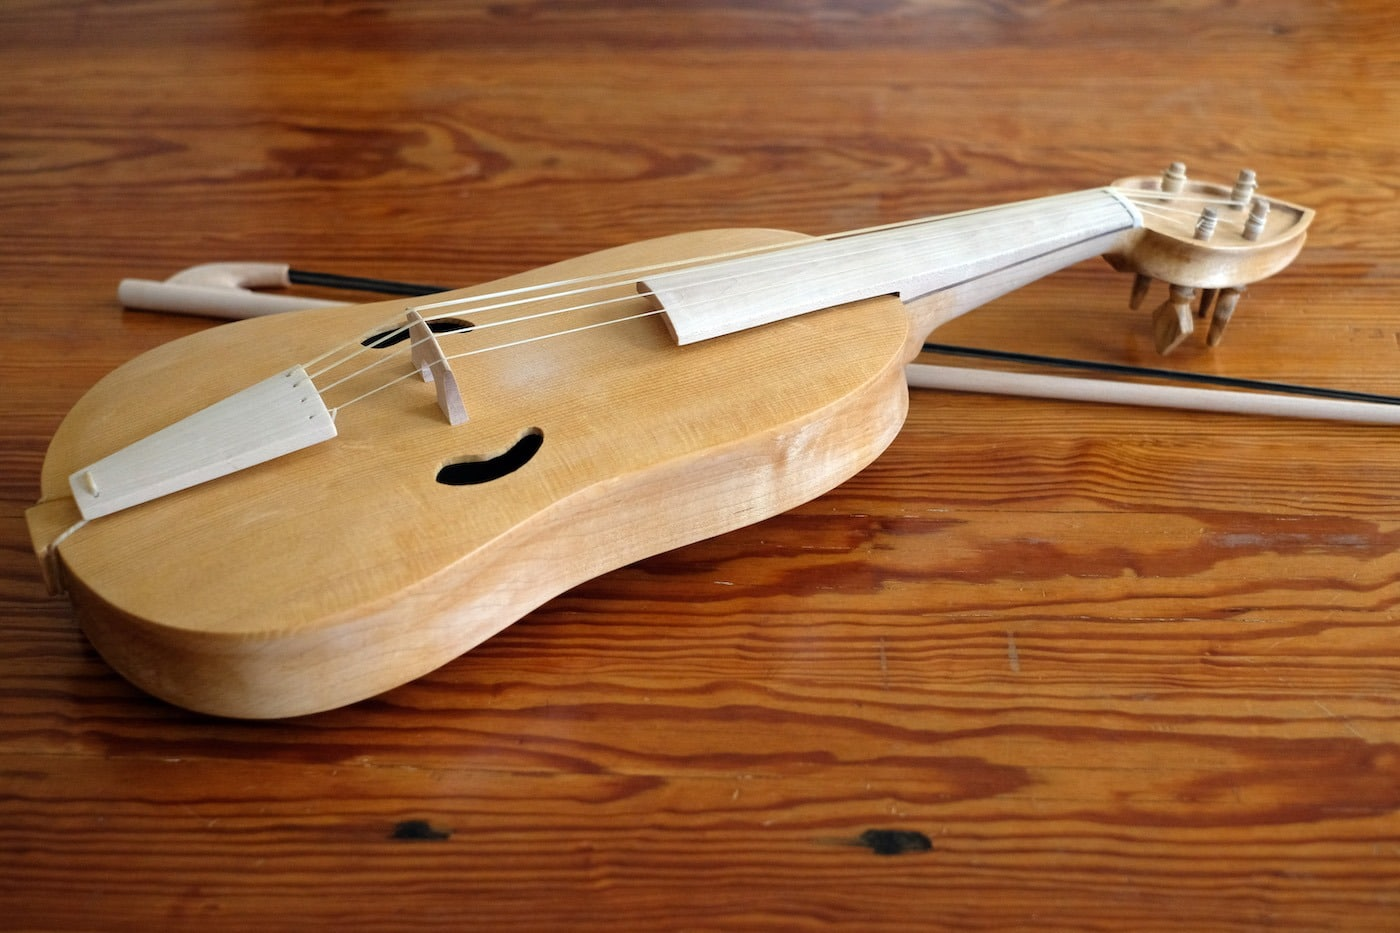 A vielle a Medieval precursor to the modern violin